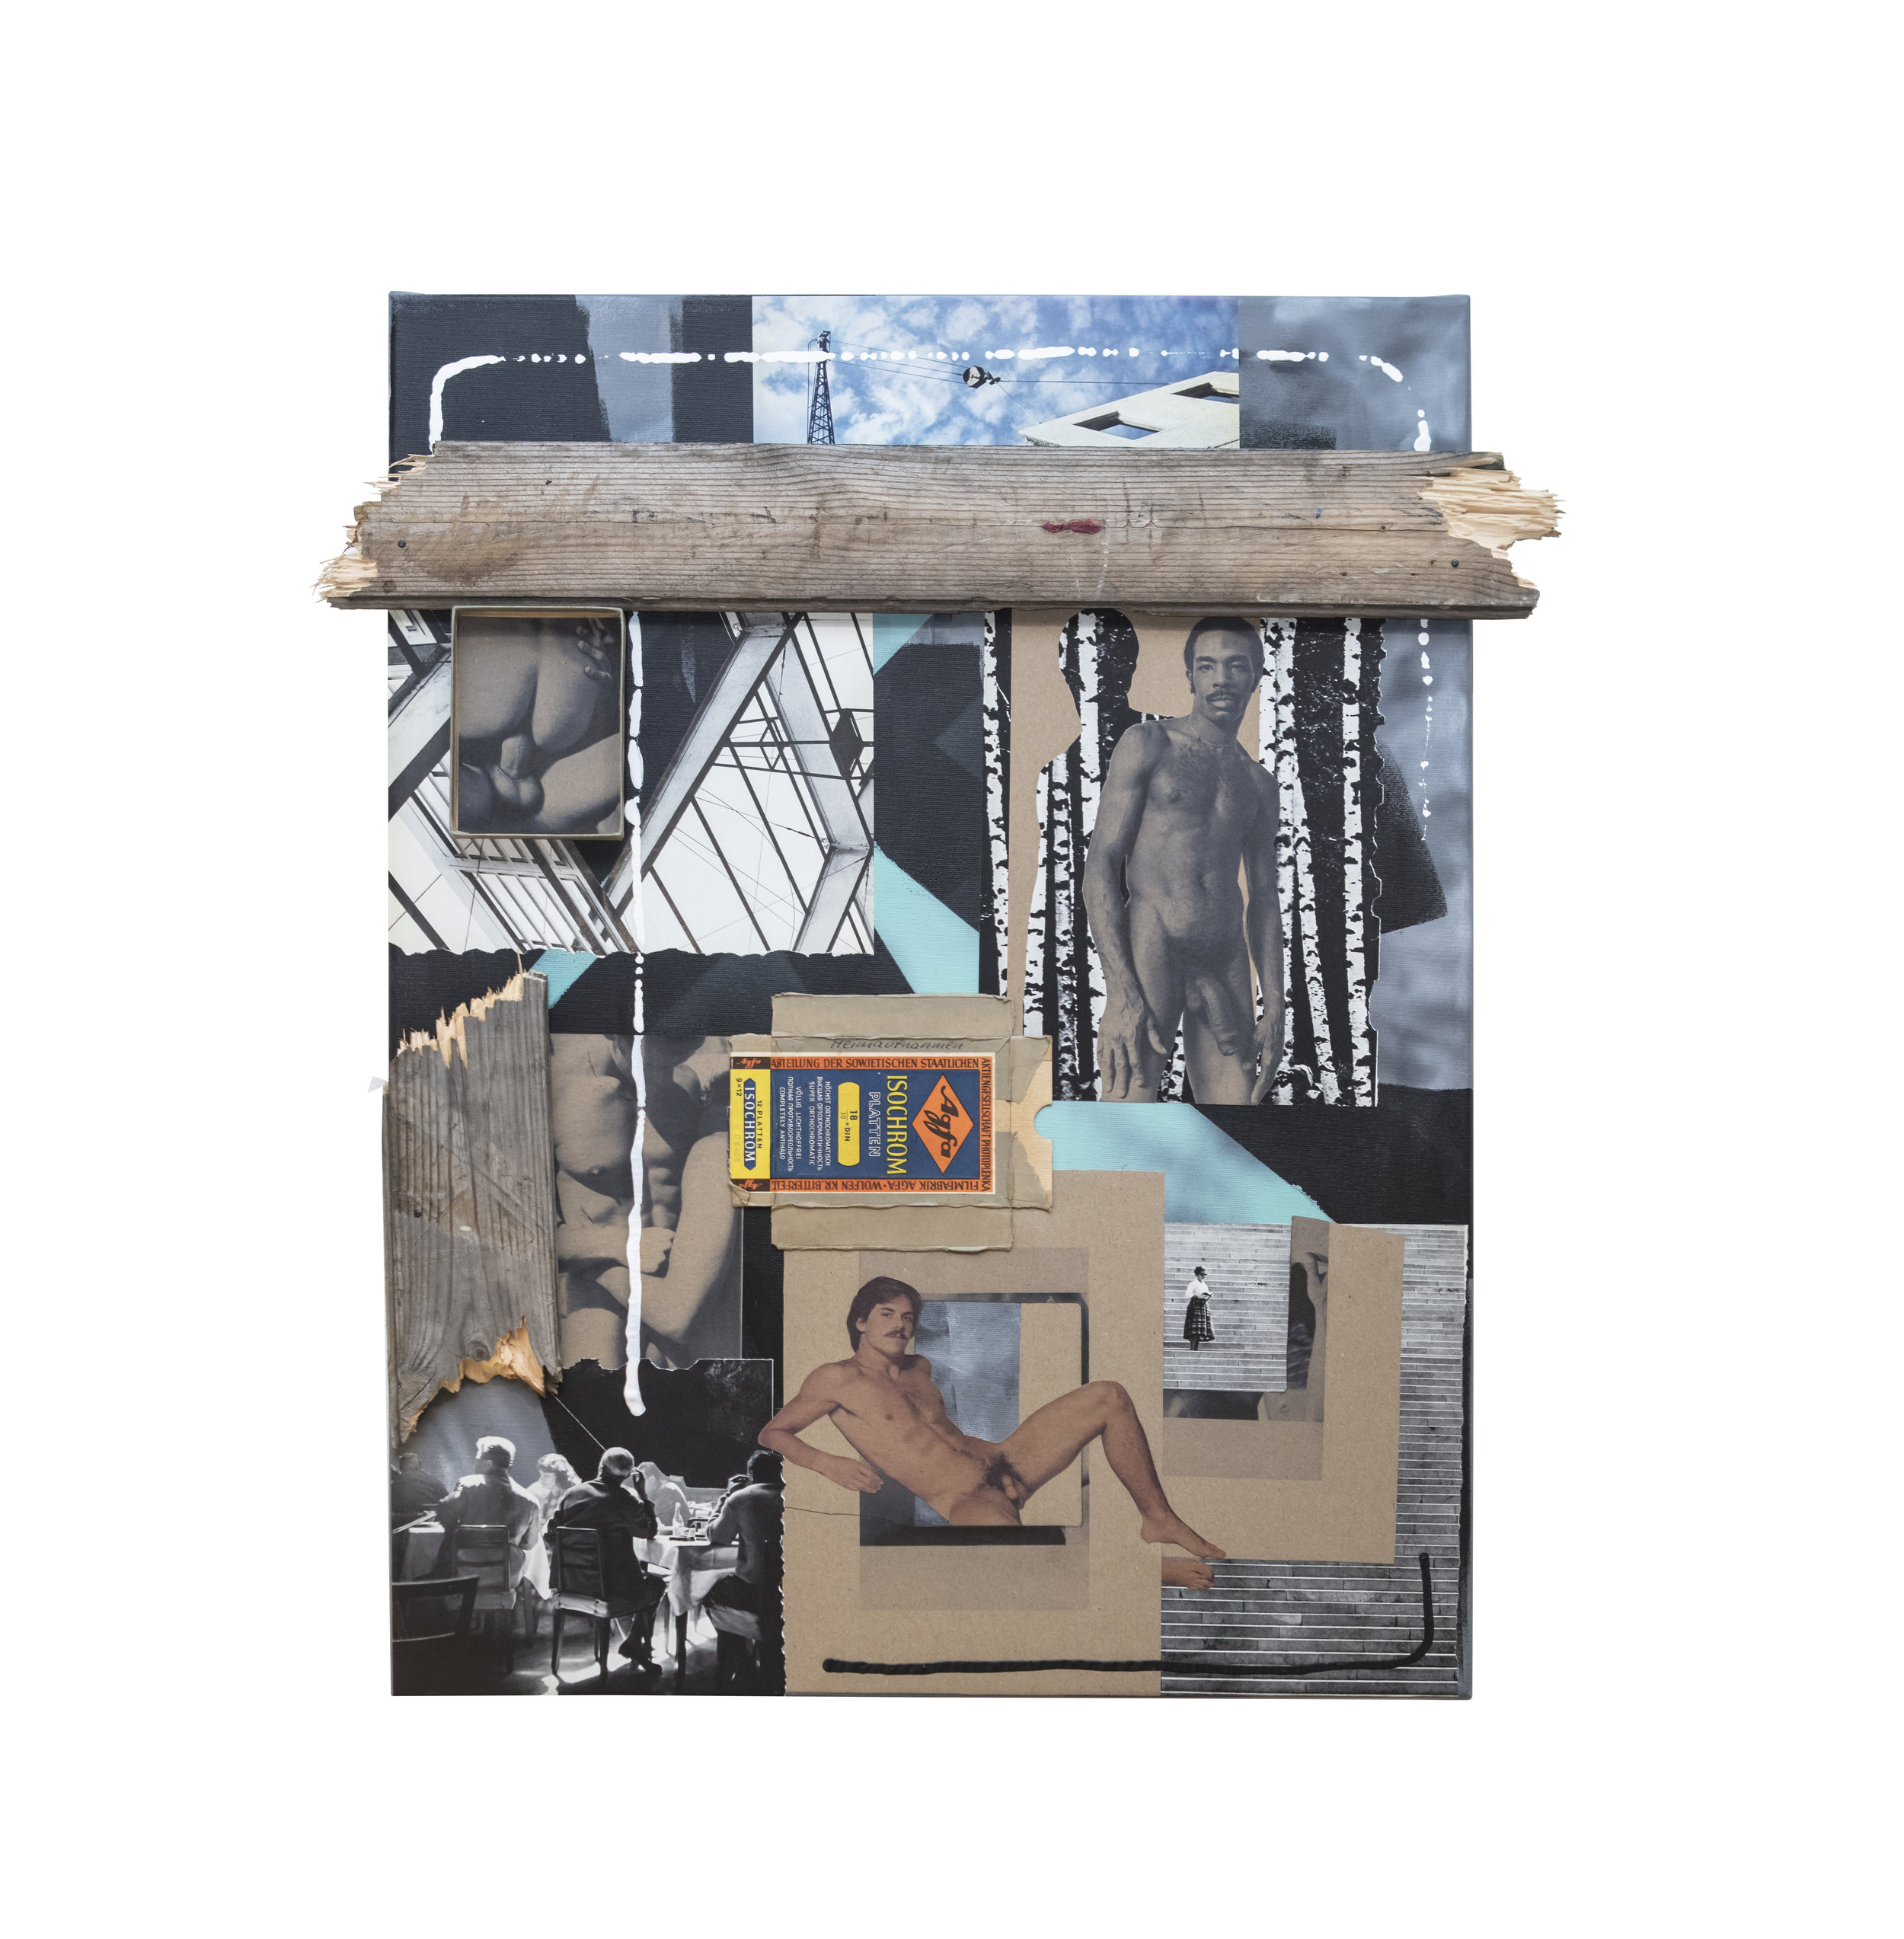 """In my mind…(02)""  - assemblage, paper collage, spray paint, acrylic paint, wood on canvas, signed and titled on the back (2018) [60x80cm]"